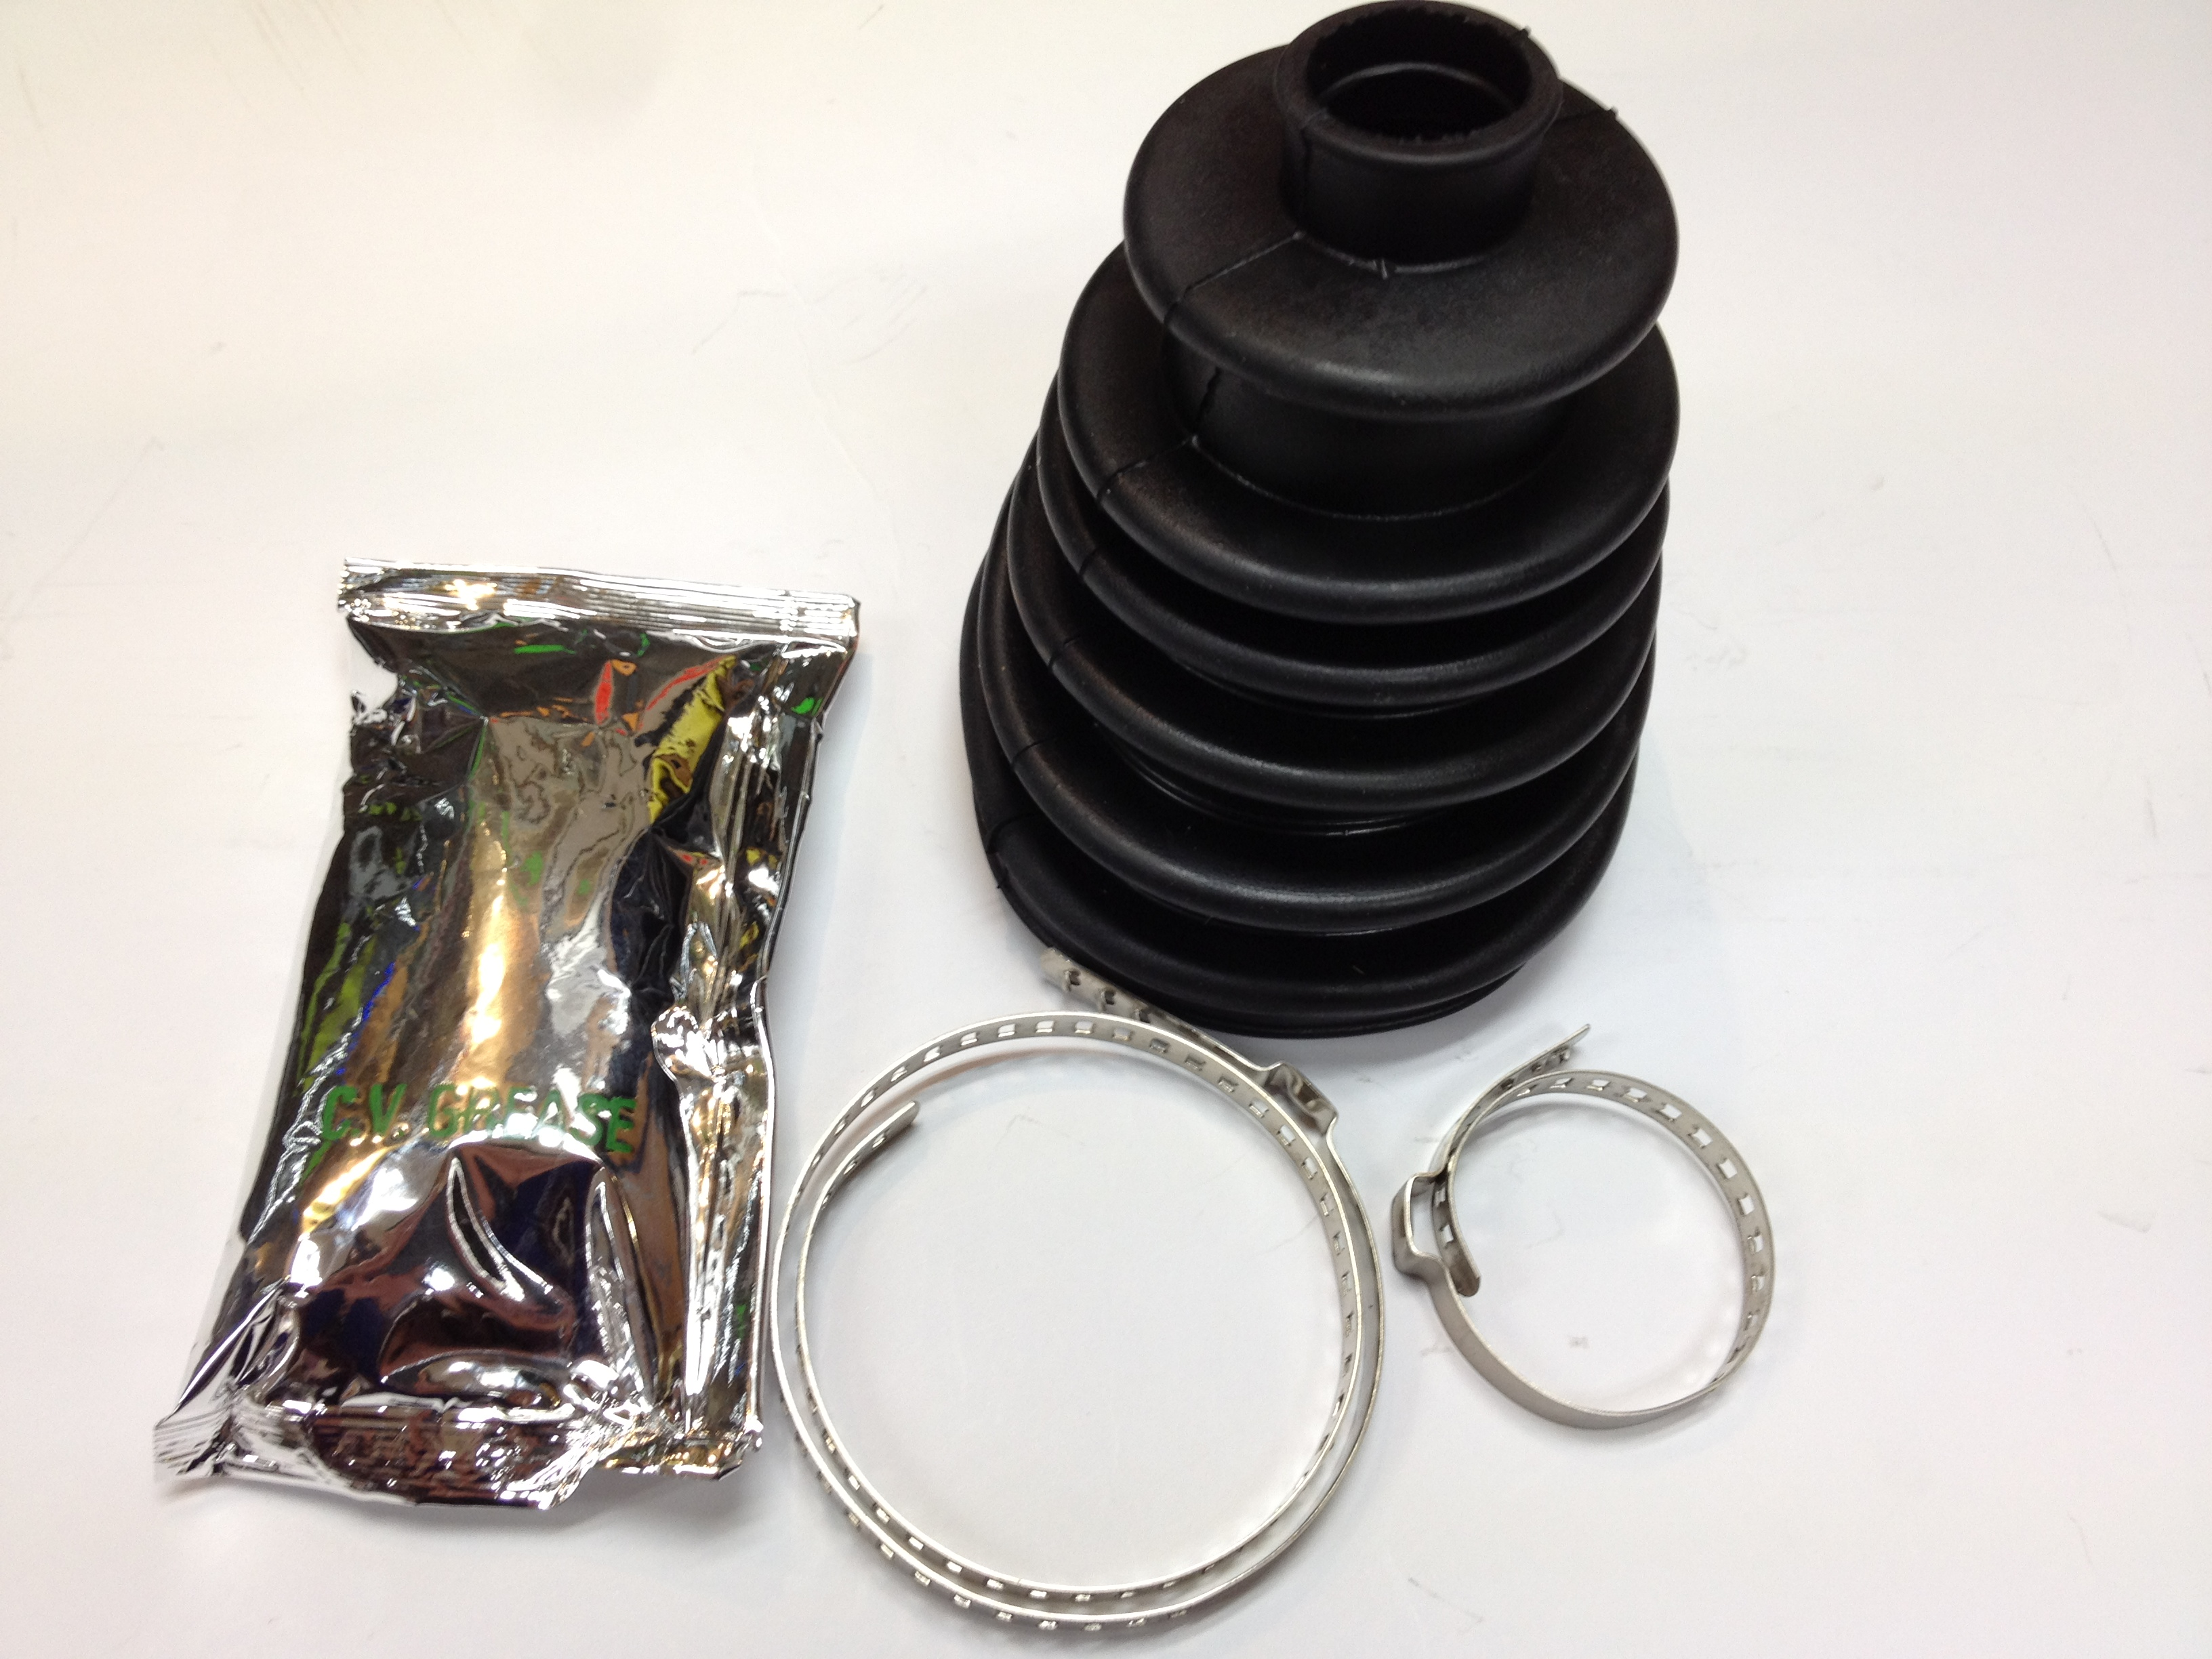 2X UNIVERSAL STRETCH DRIVE SHAFT GAITERS CV JOINT BOOT KIT /& FITTING CONE